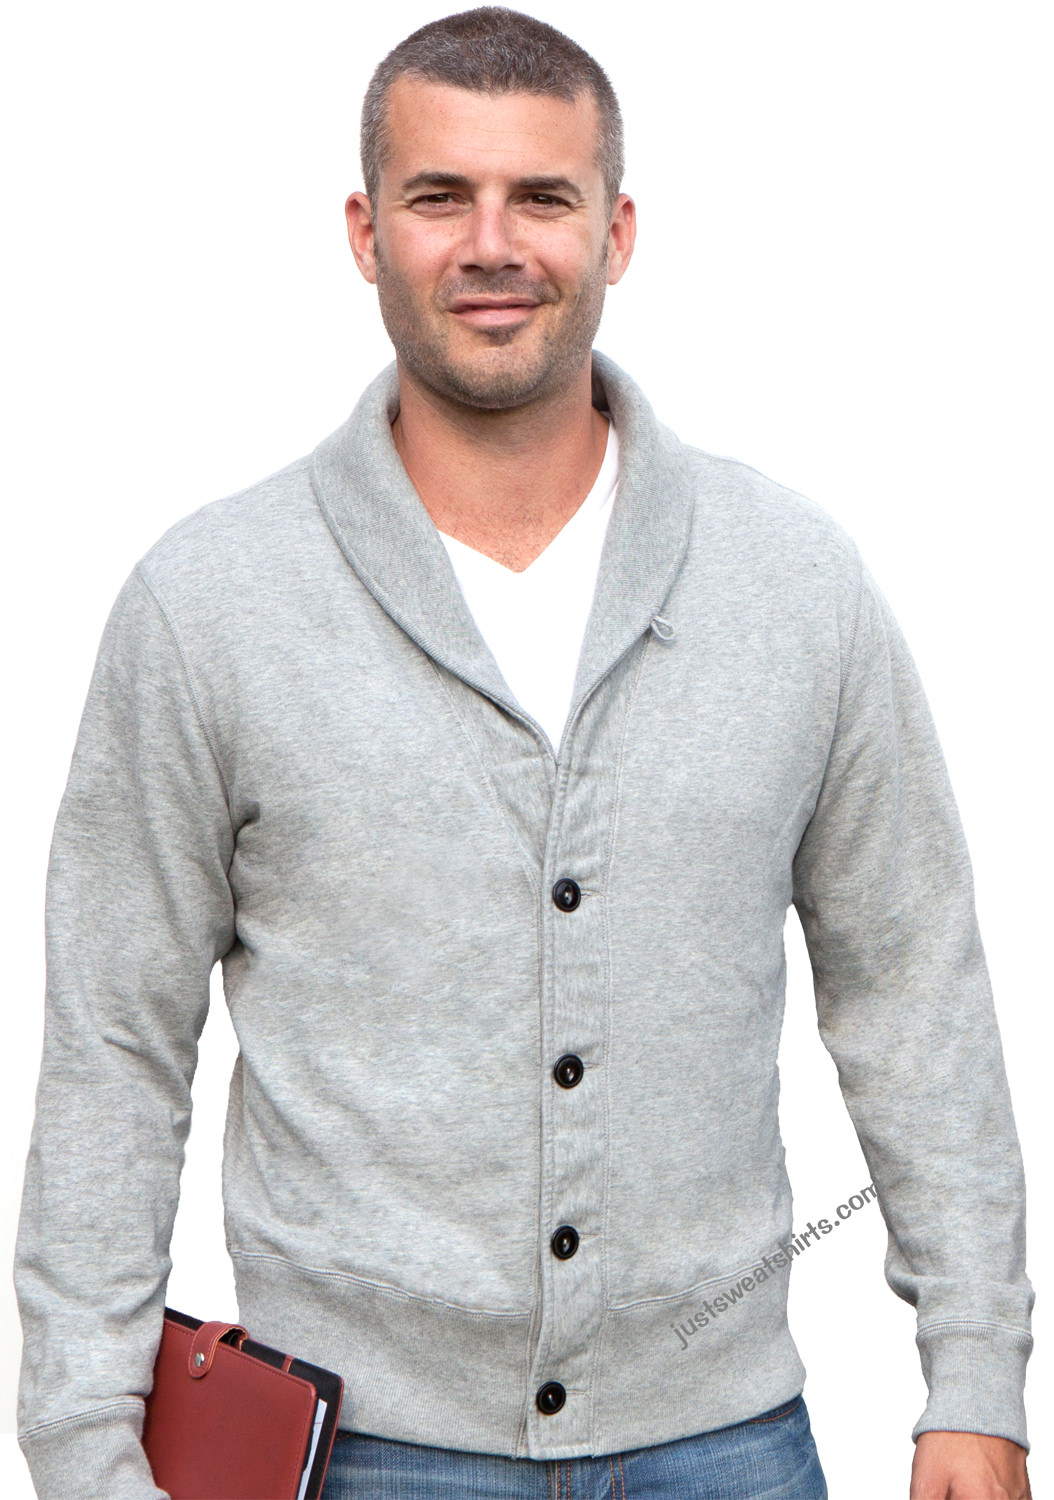 Men's Cardigan Sweatshirt Grey Mix 100% Cotton